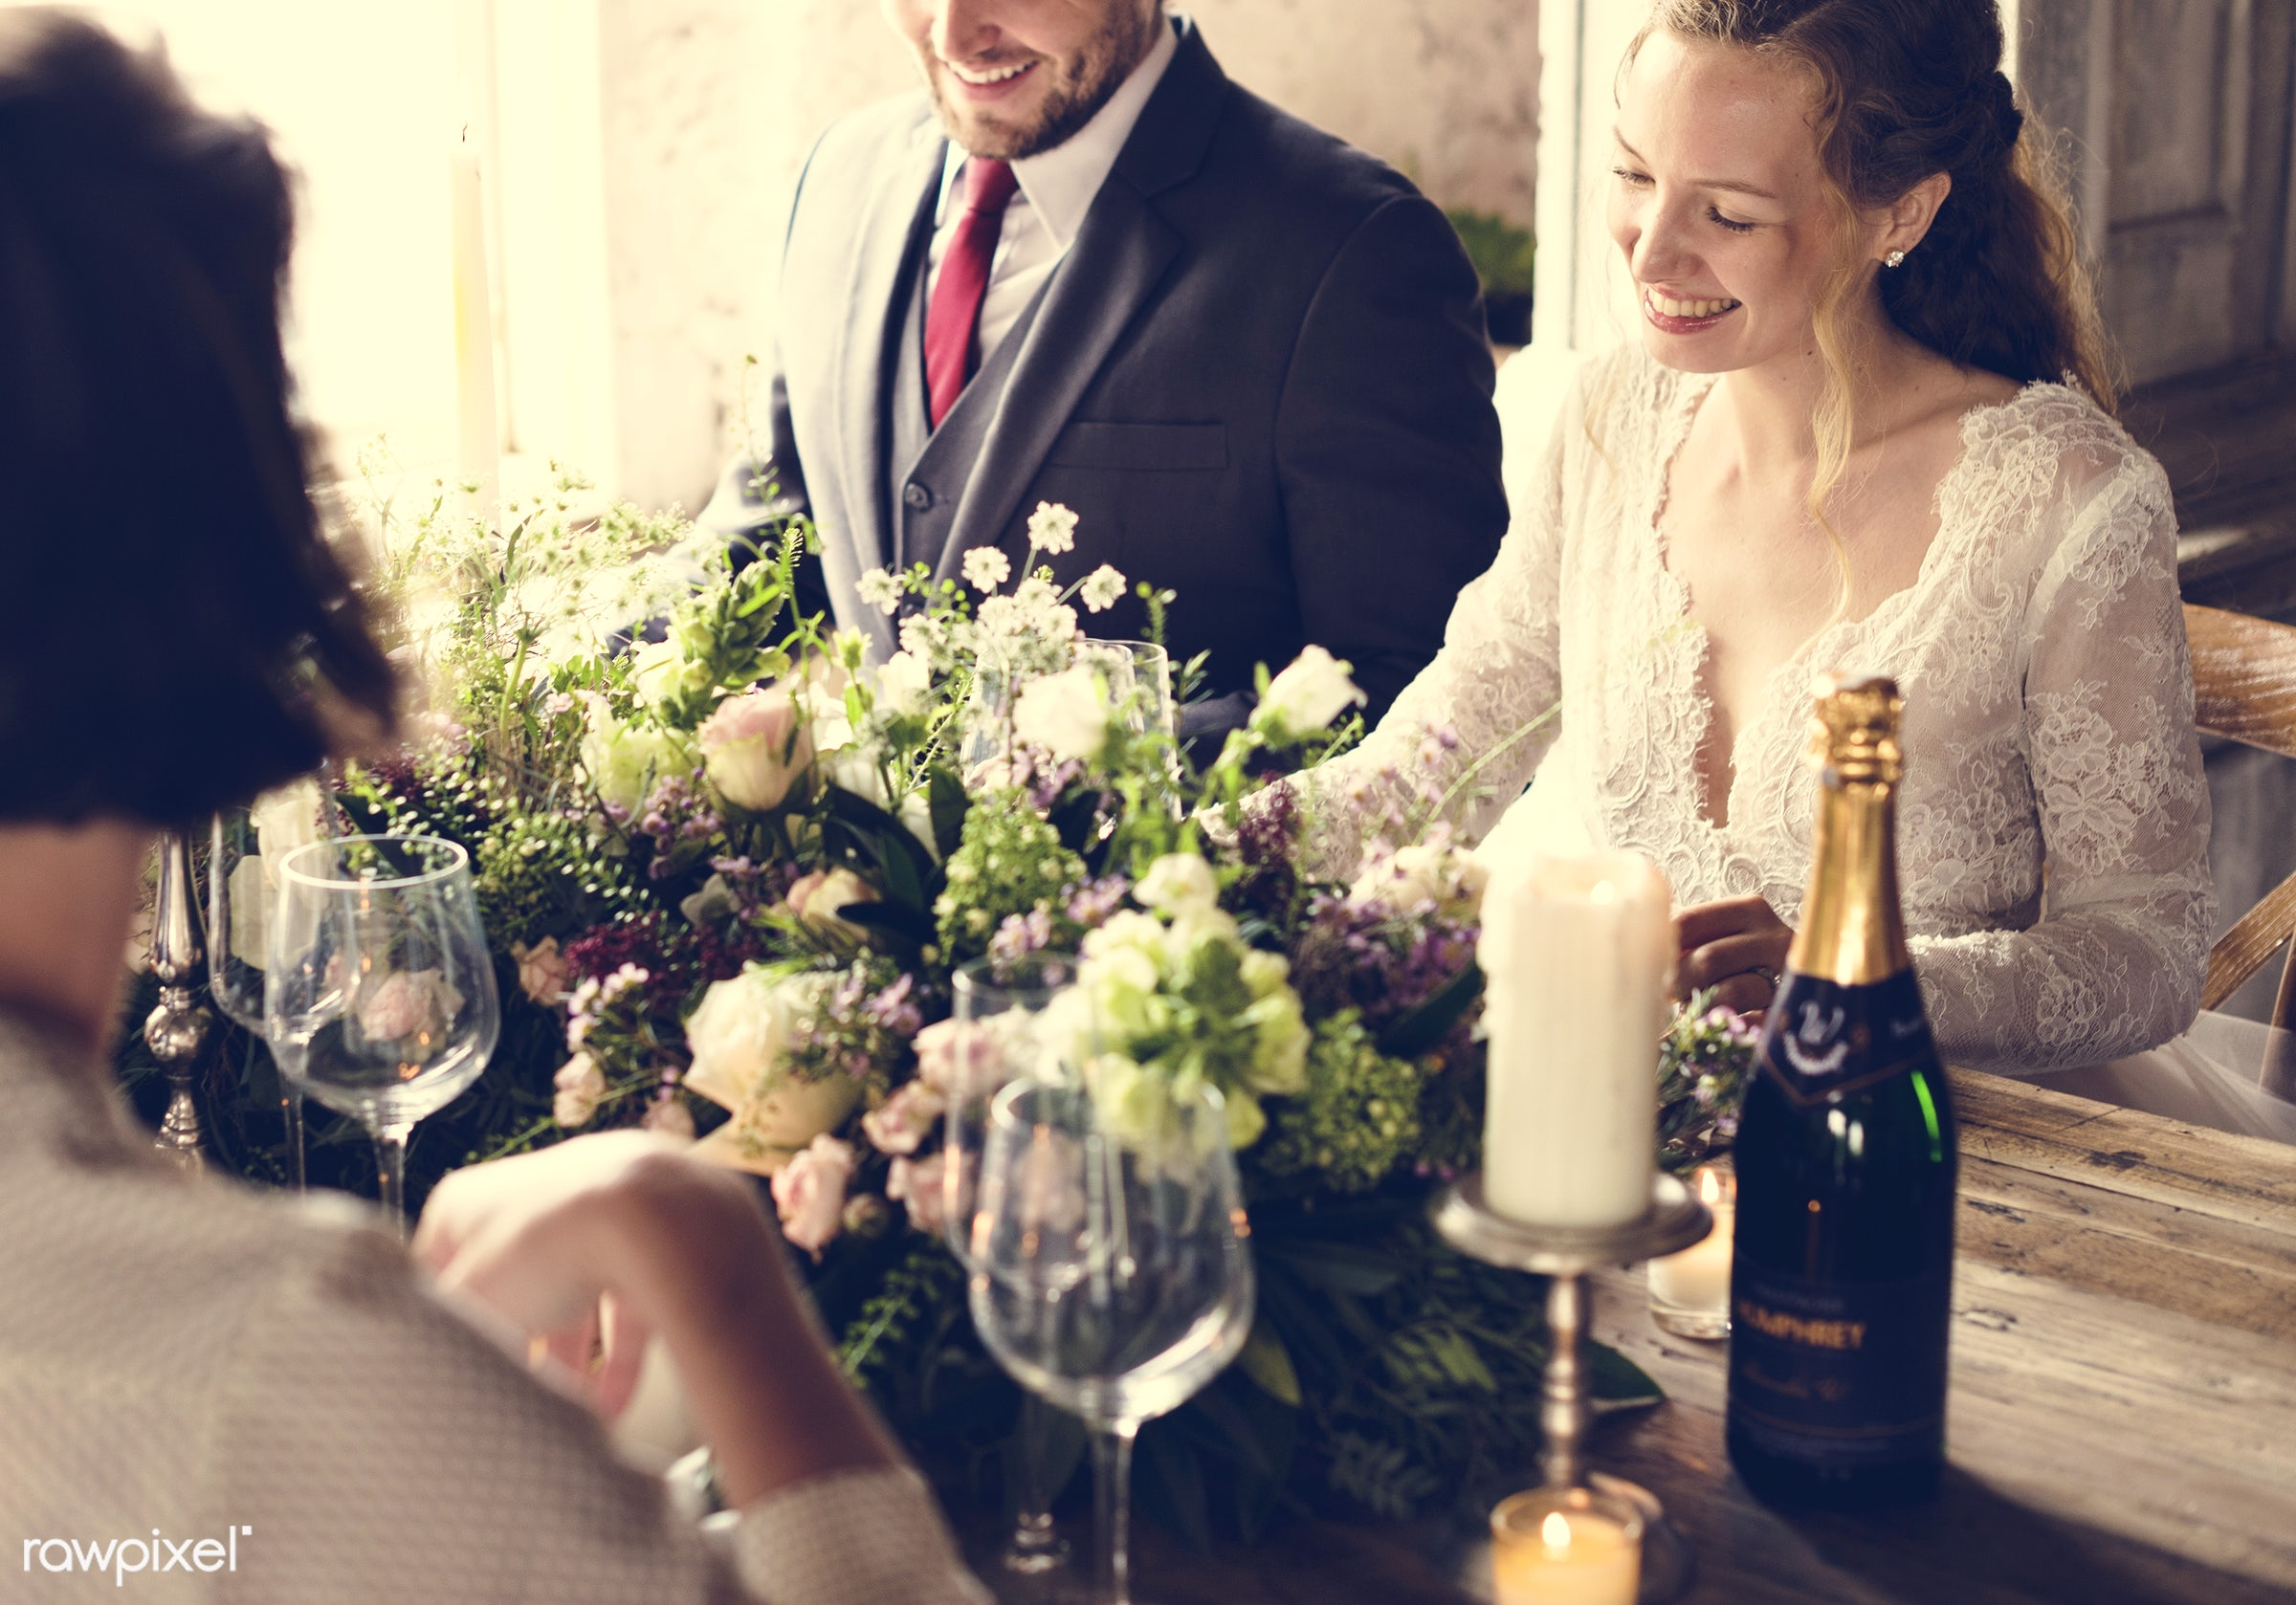 expression, person, occasion, smitten, restaurant, husband, people, together, love, friends, married, woman, event, family,...